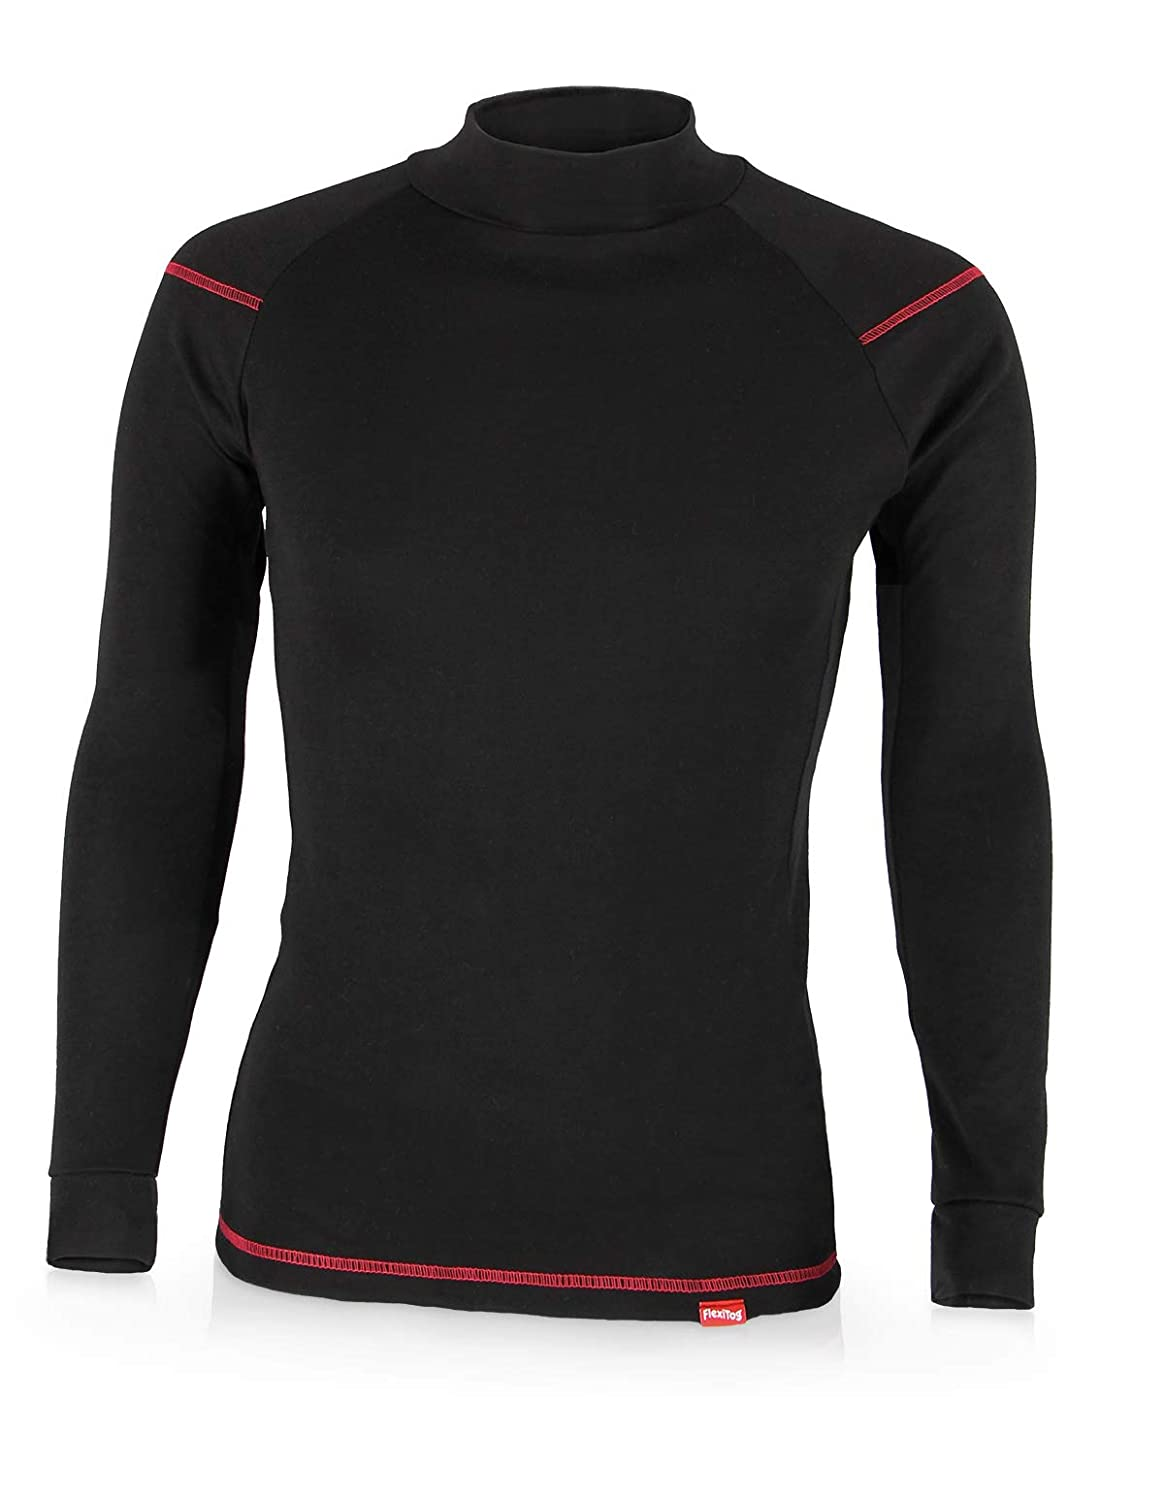 FlexiTog - Premium Baselayer Thermal Long Sleeve Vest